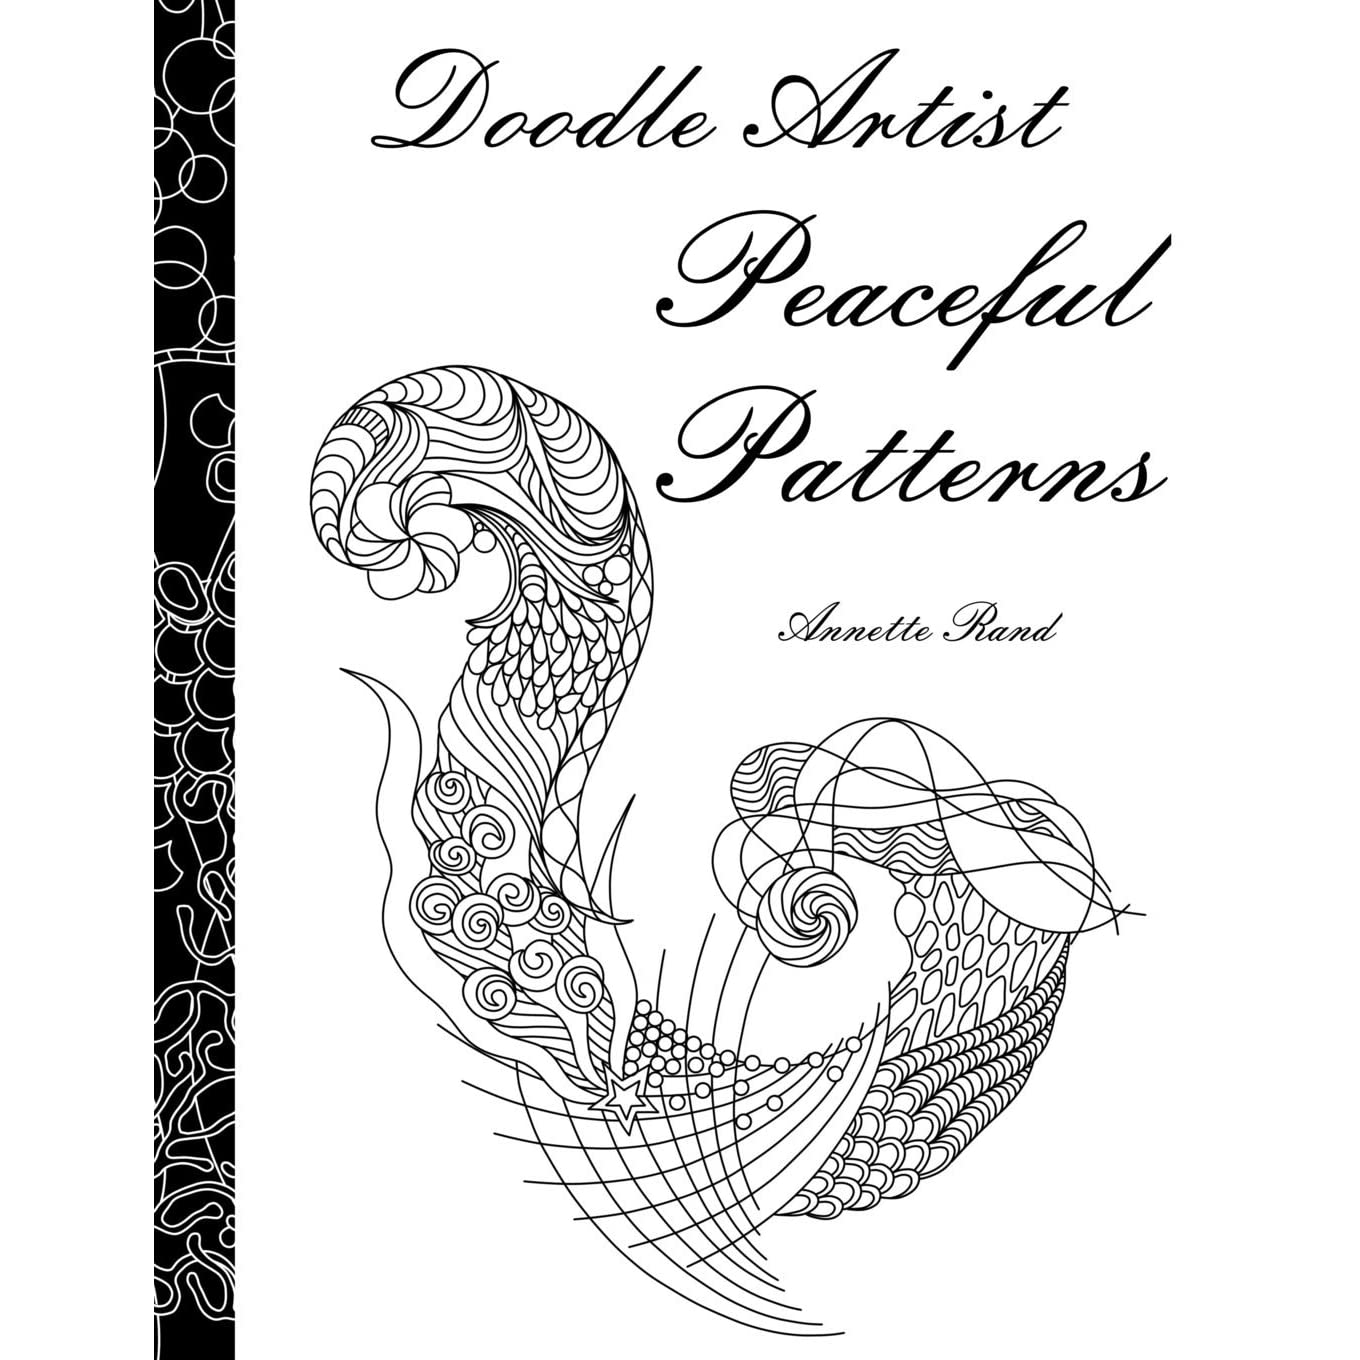 Gr grown up colouring in pages - Gr Grown Ups Colouring In Doodle Artist Peaceful Patterns By Annette Rand Reviews Discussion Bookclubs